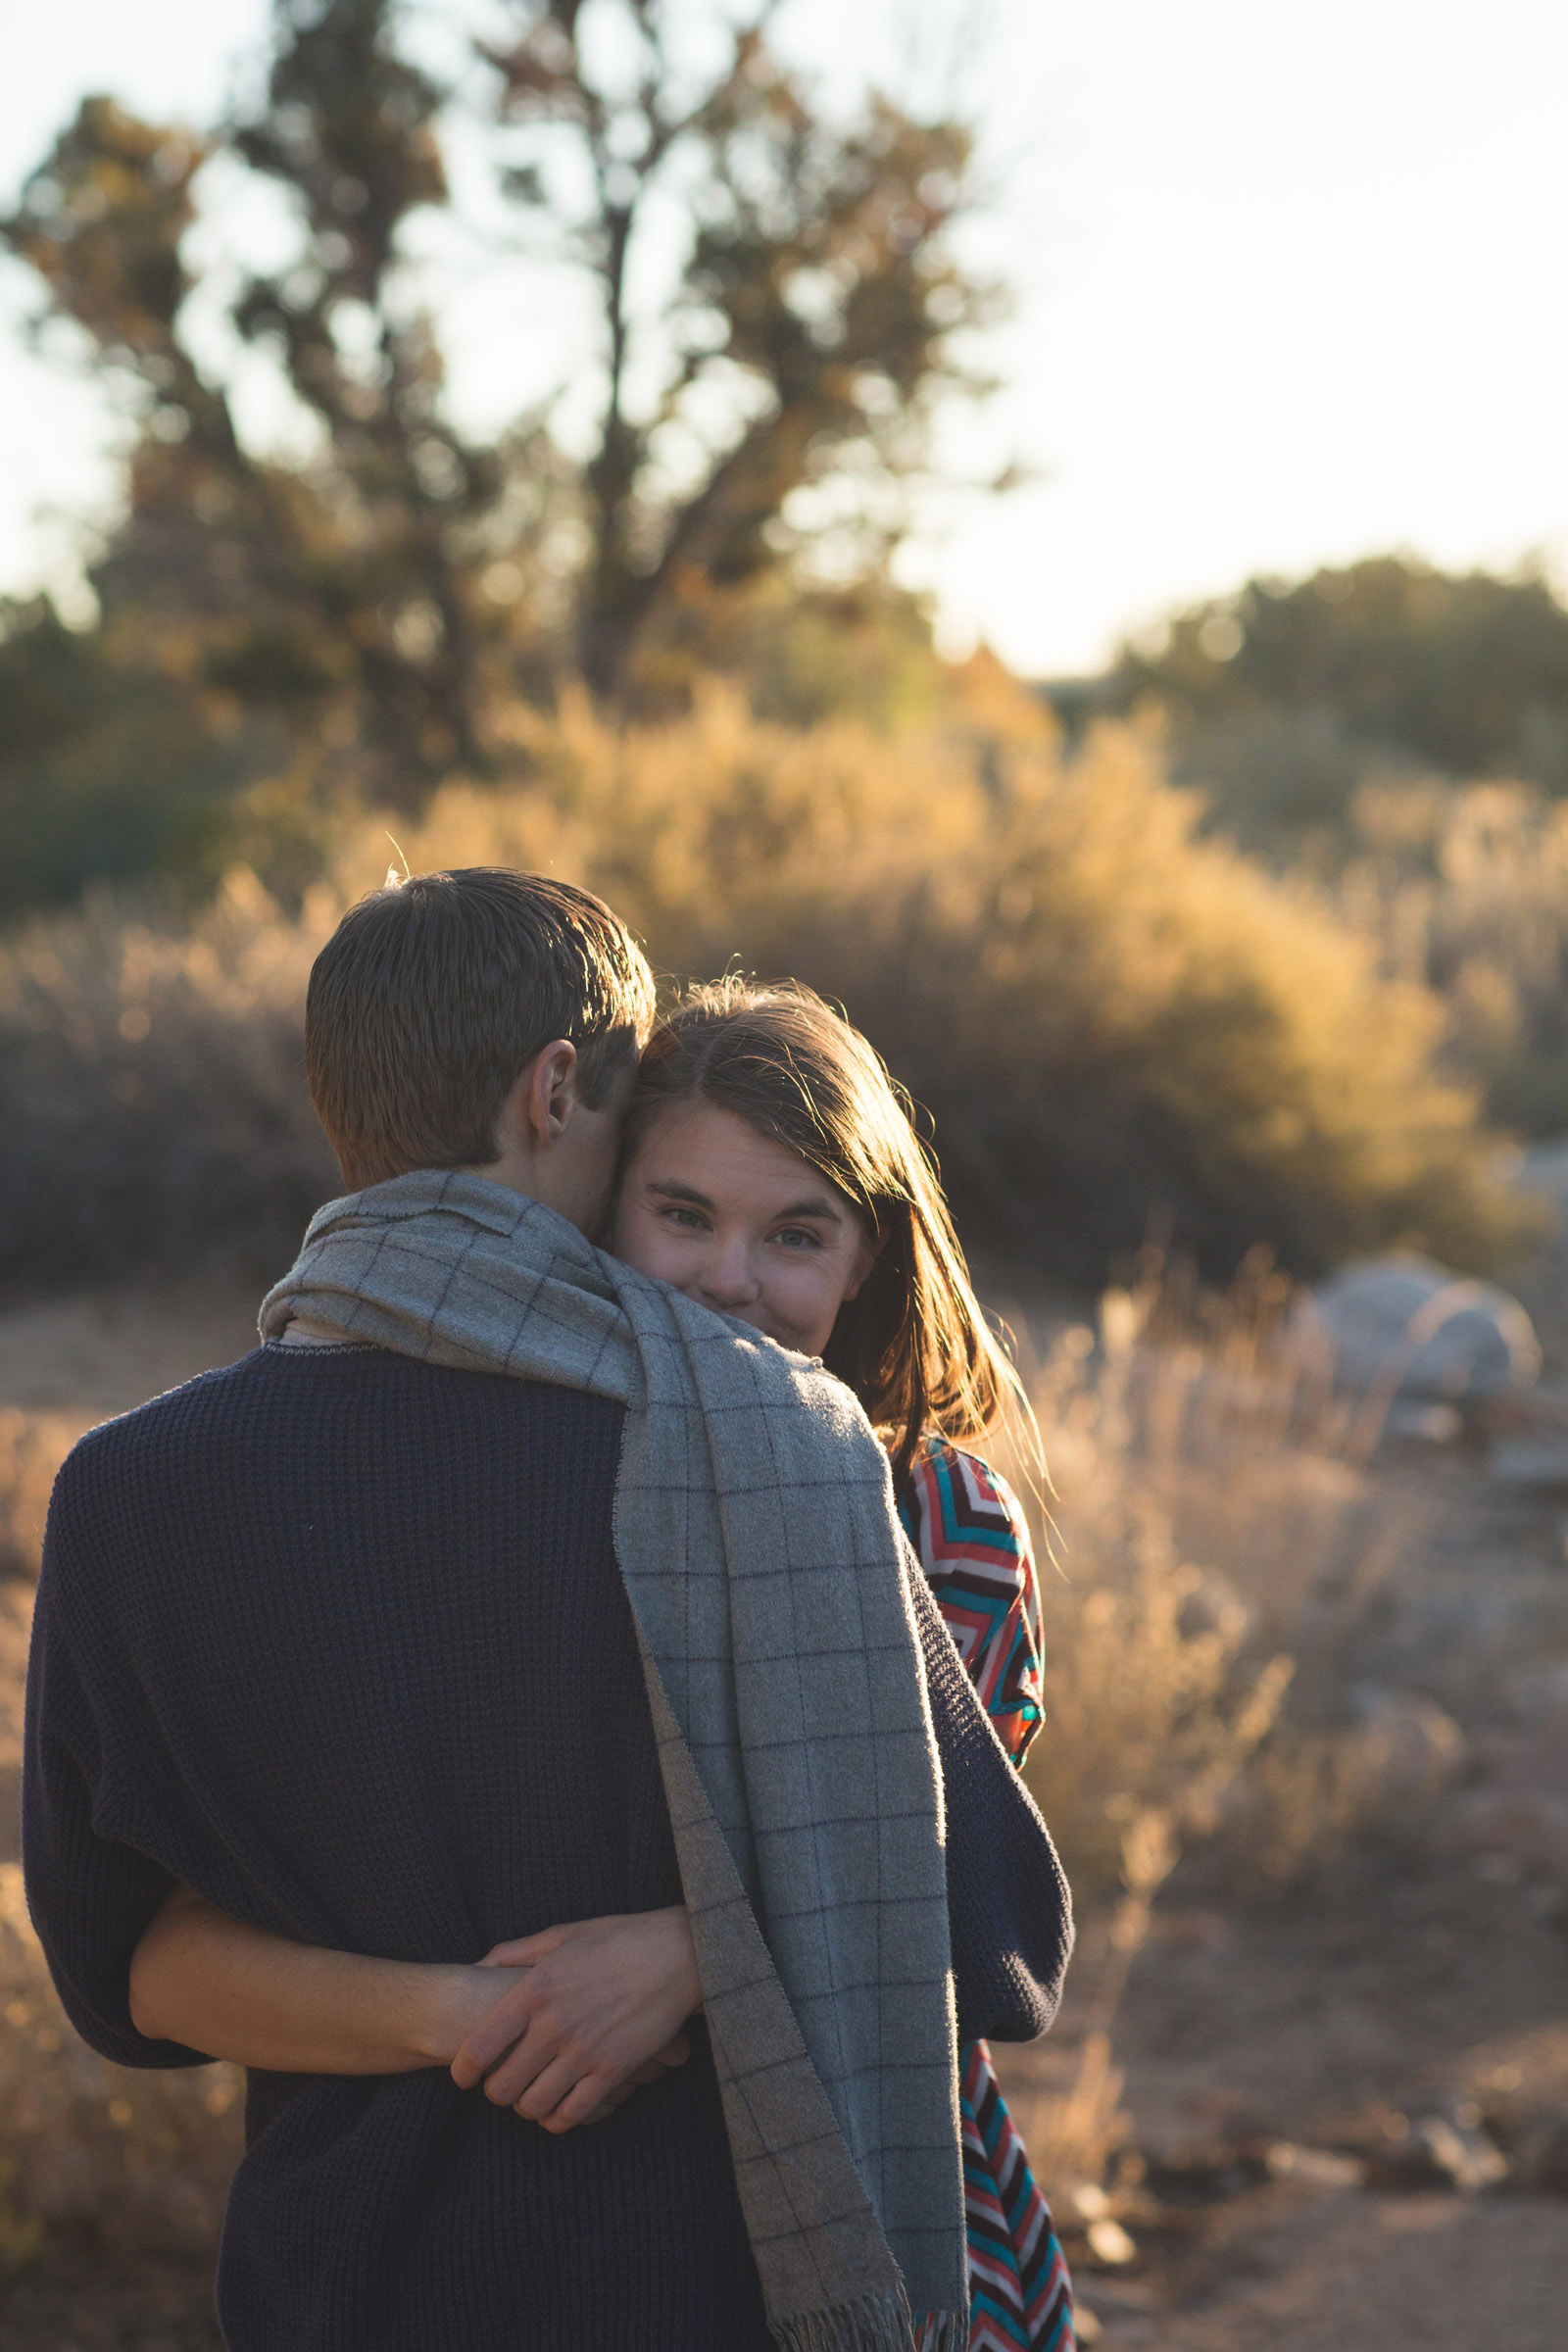 070-engagement-photographers-in-nm-farmington-and-albuquerque